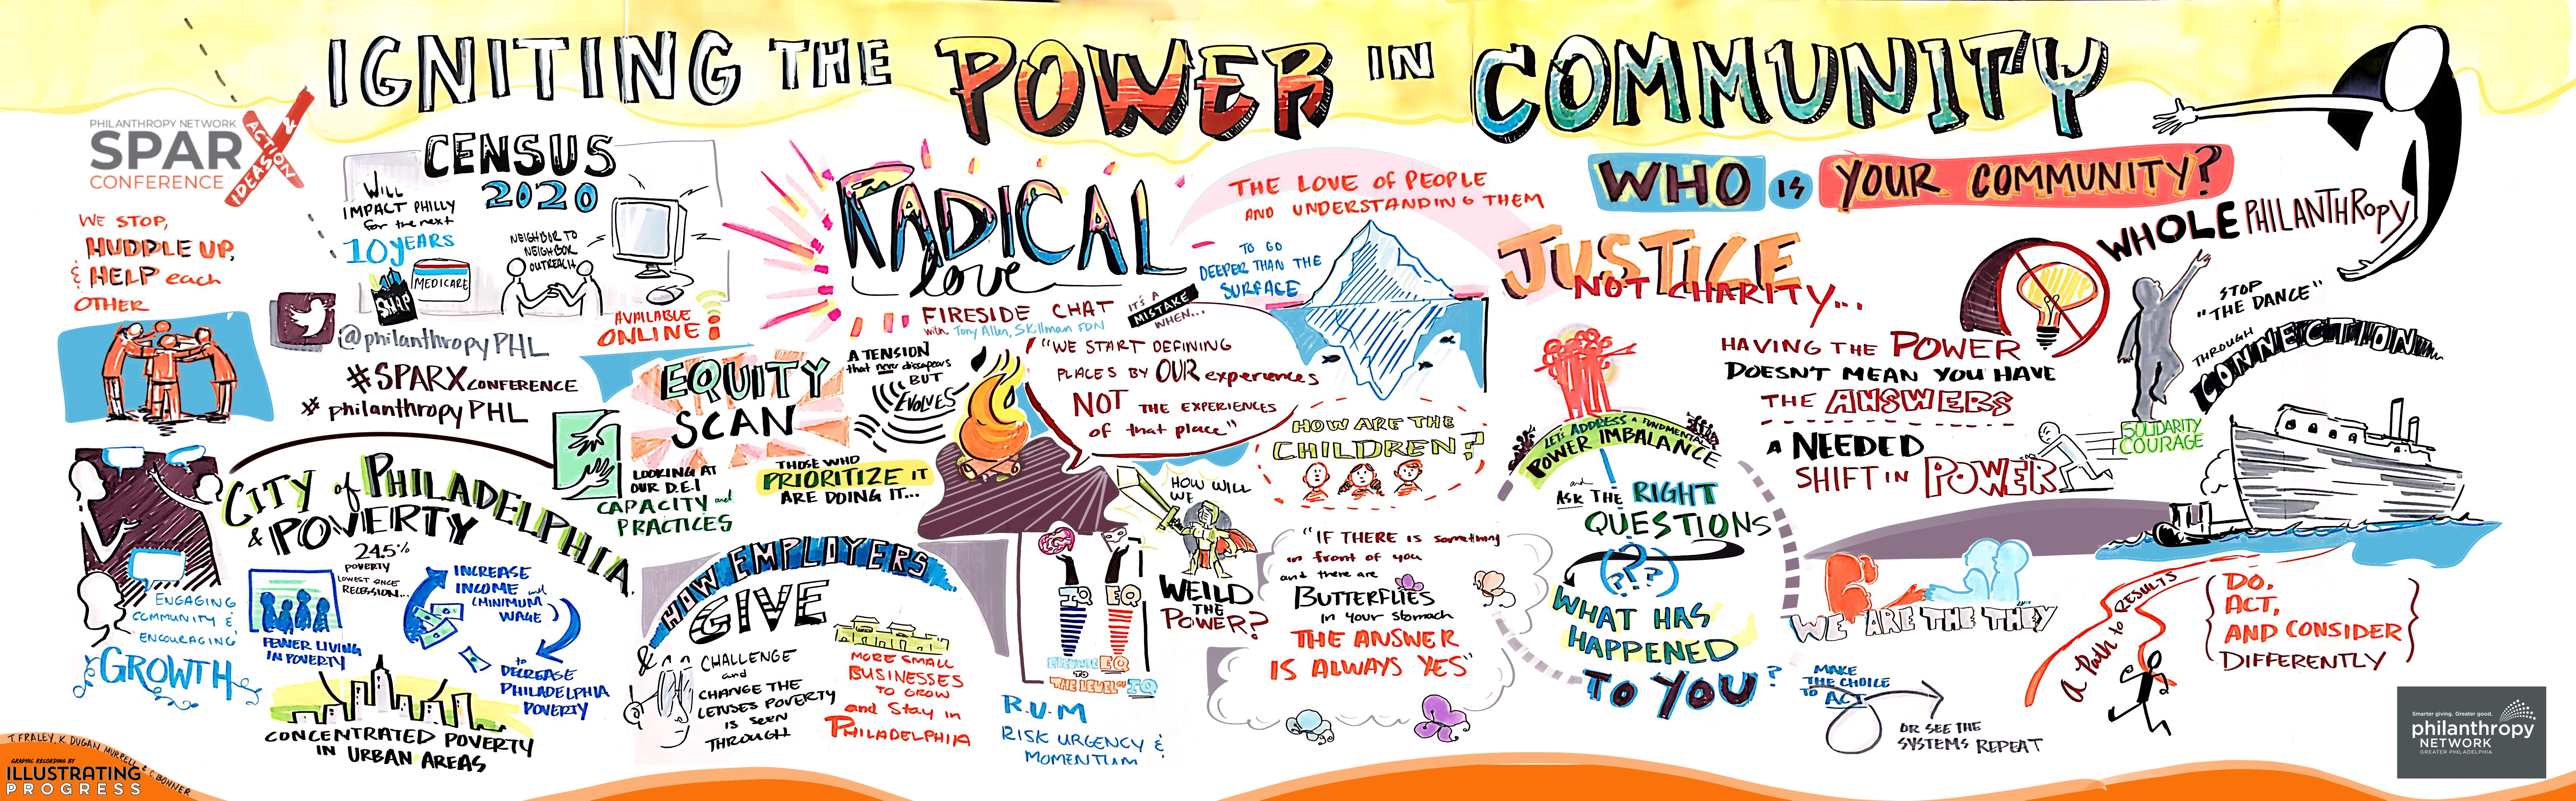 "Illustration Board: 2019 SPARX Conference ""Igniting the Power in Community"""